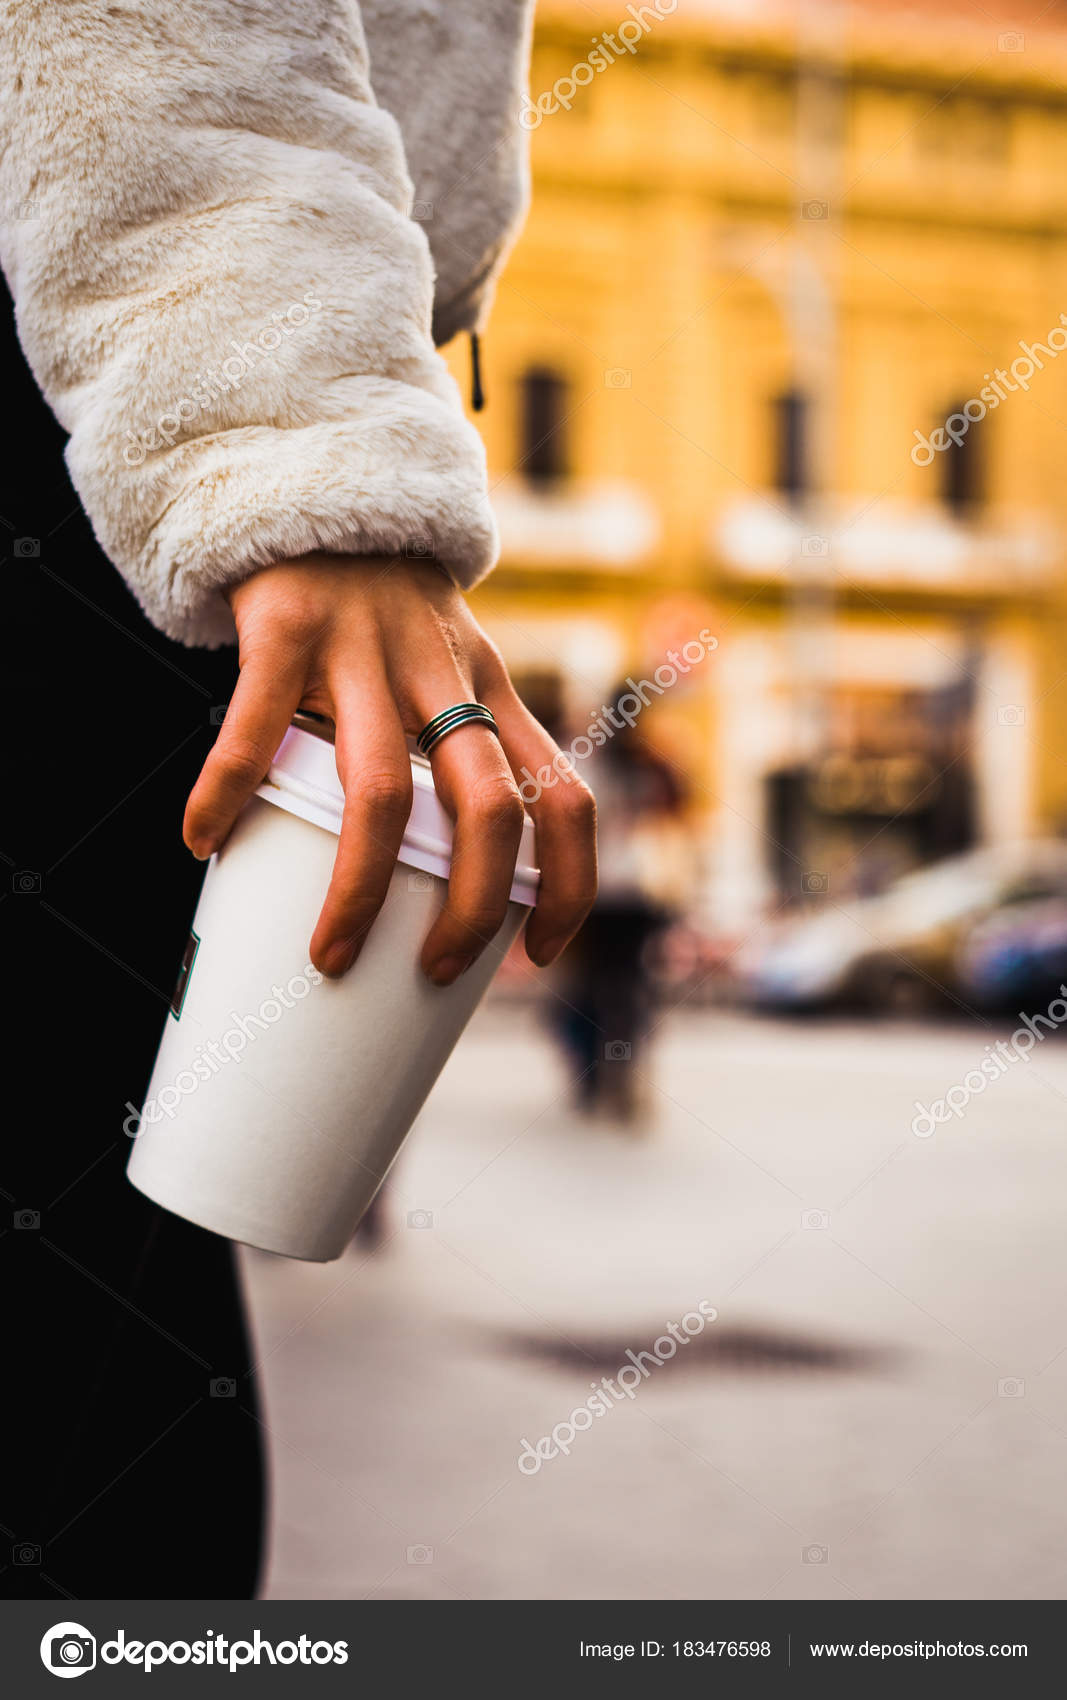 Crop stylish girl holding paper cup — Stock Photo © skat_36 #183476598